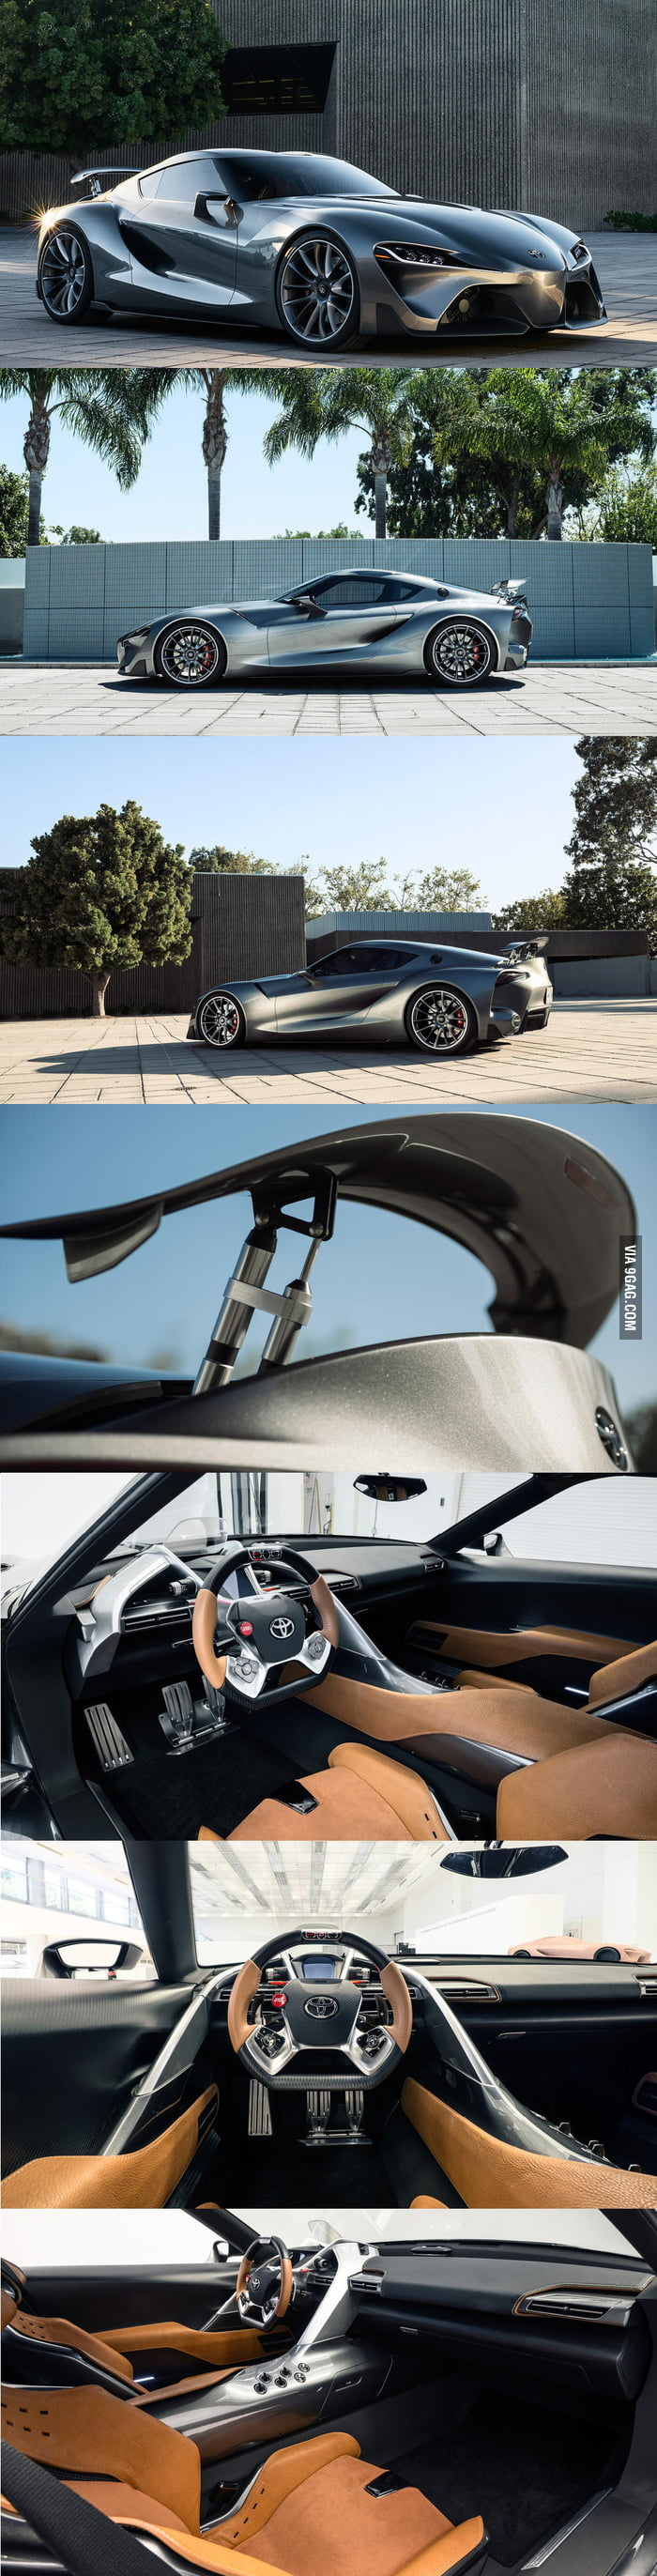 The Toyota FT-1 from different angles and also interior